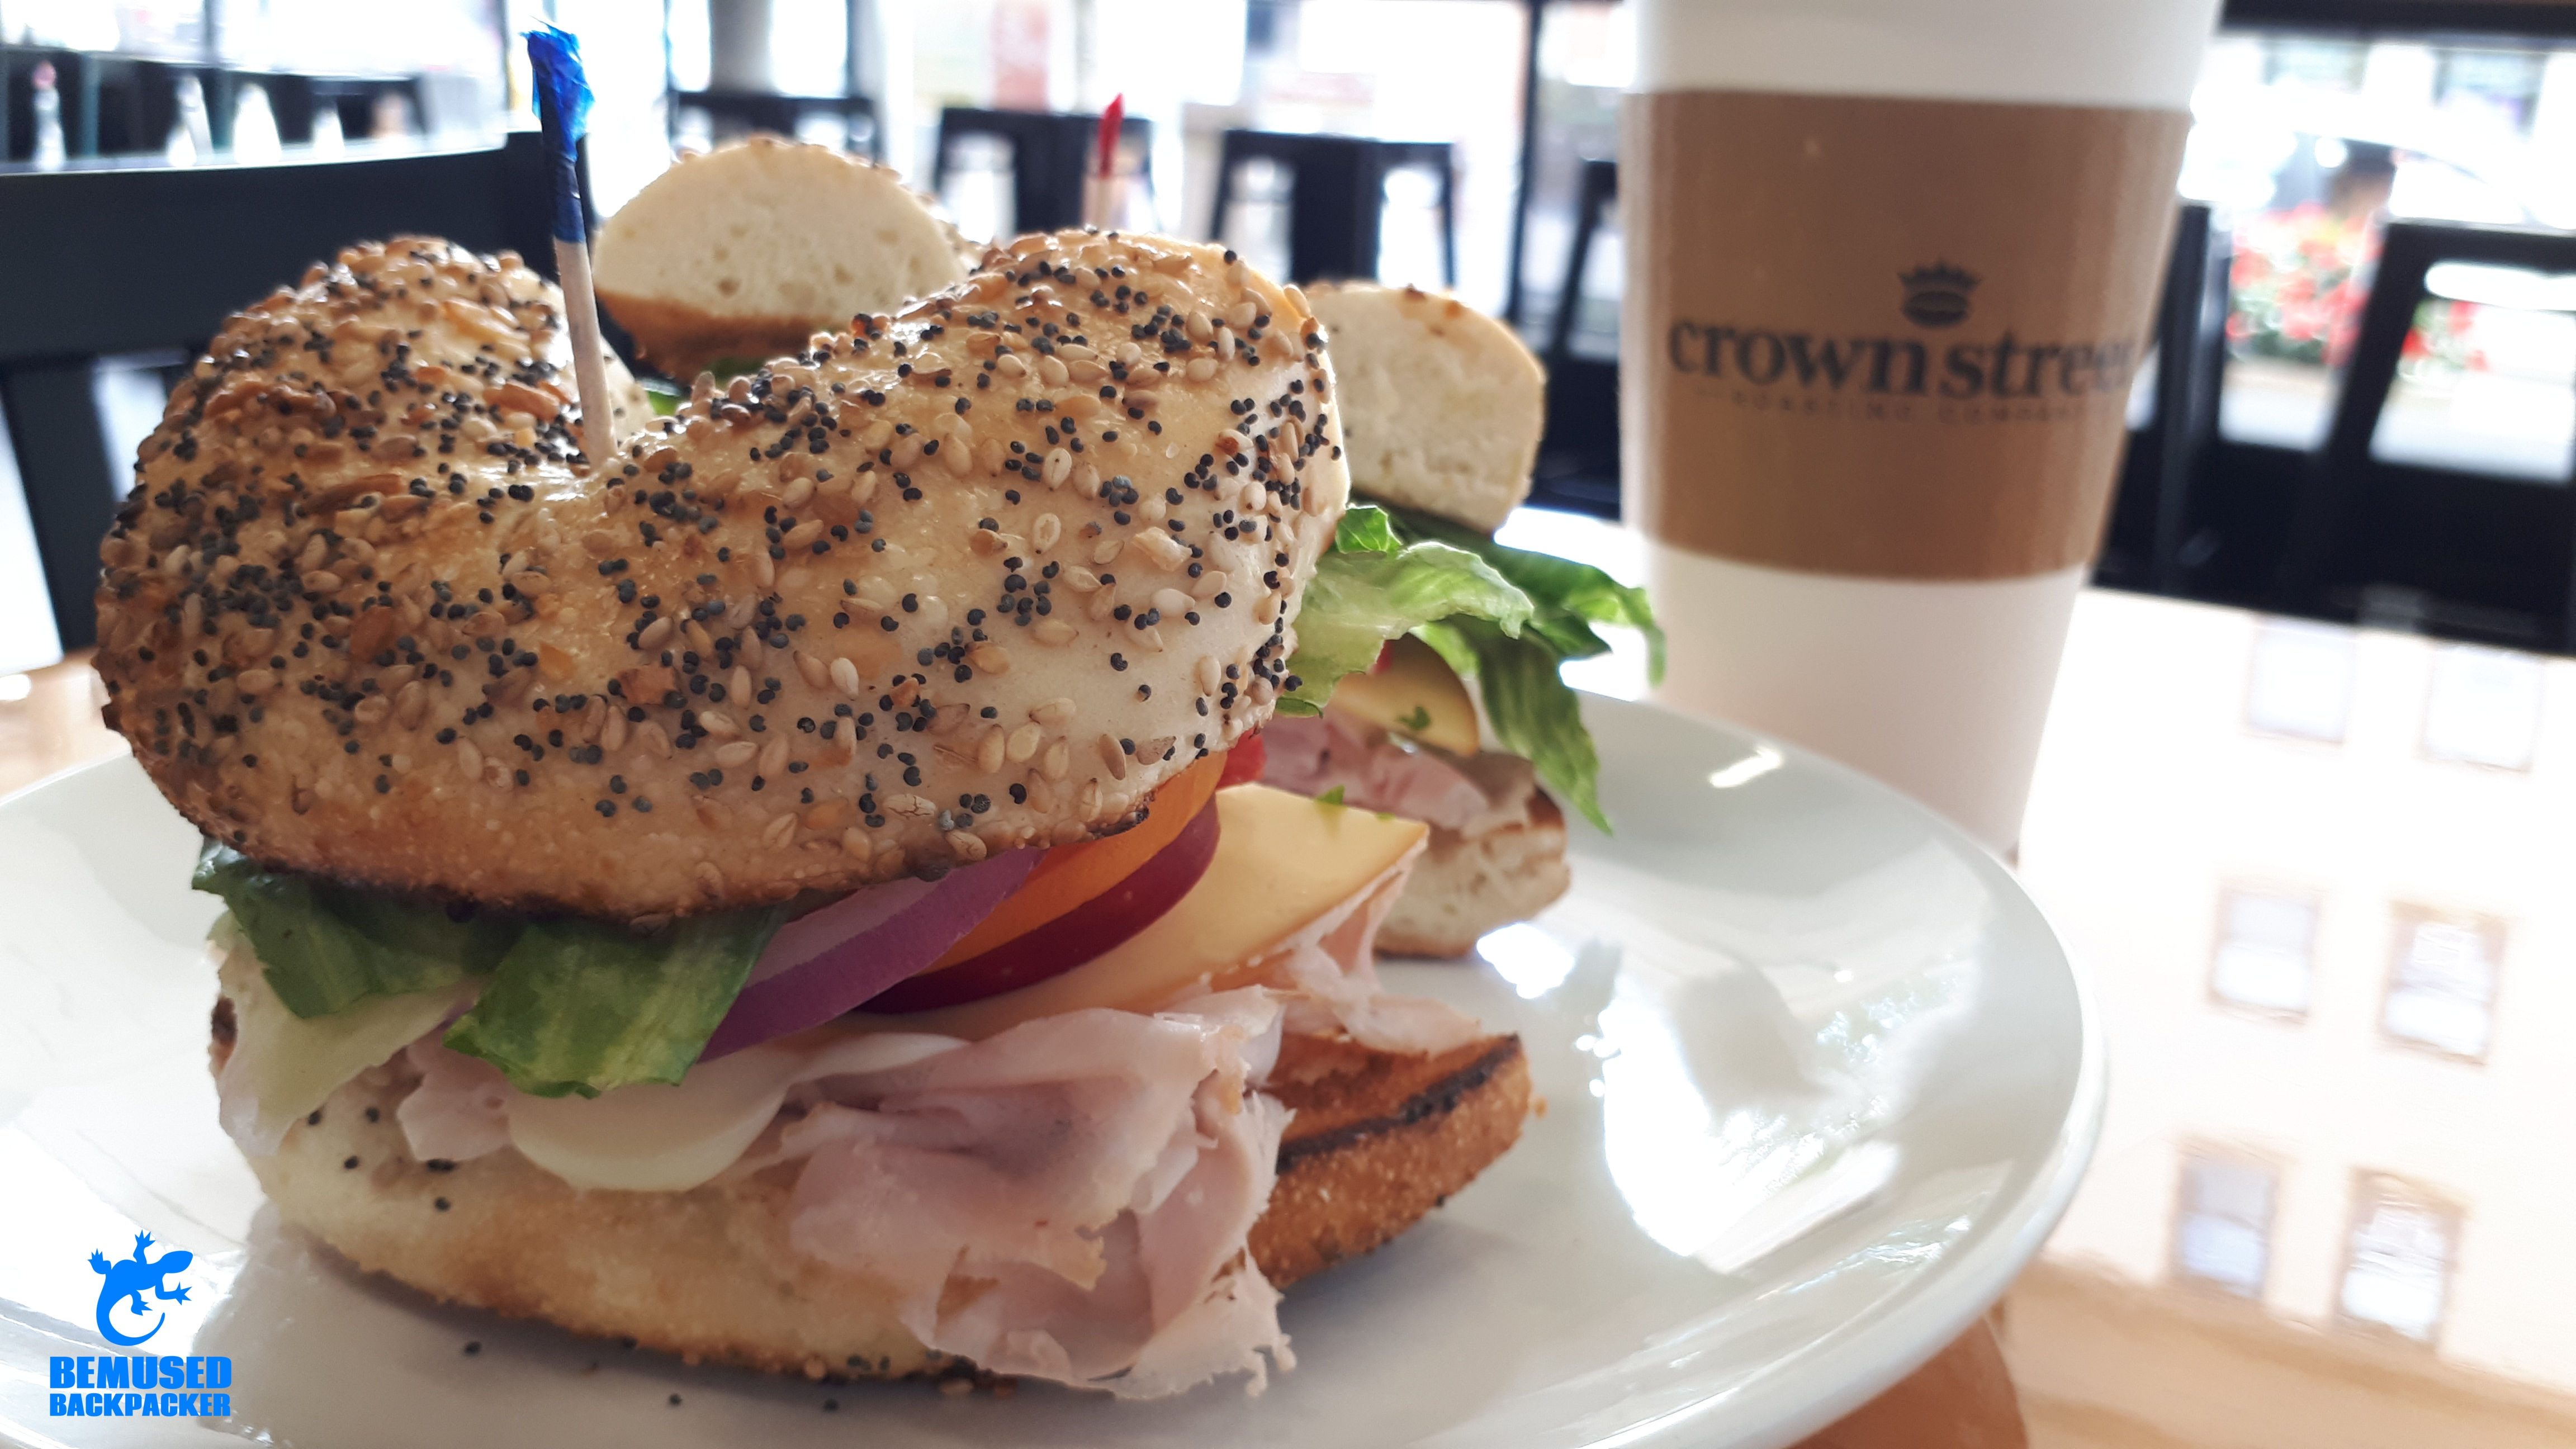 Crown Street Coffee and Brunch in Finger Lakes New York